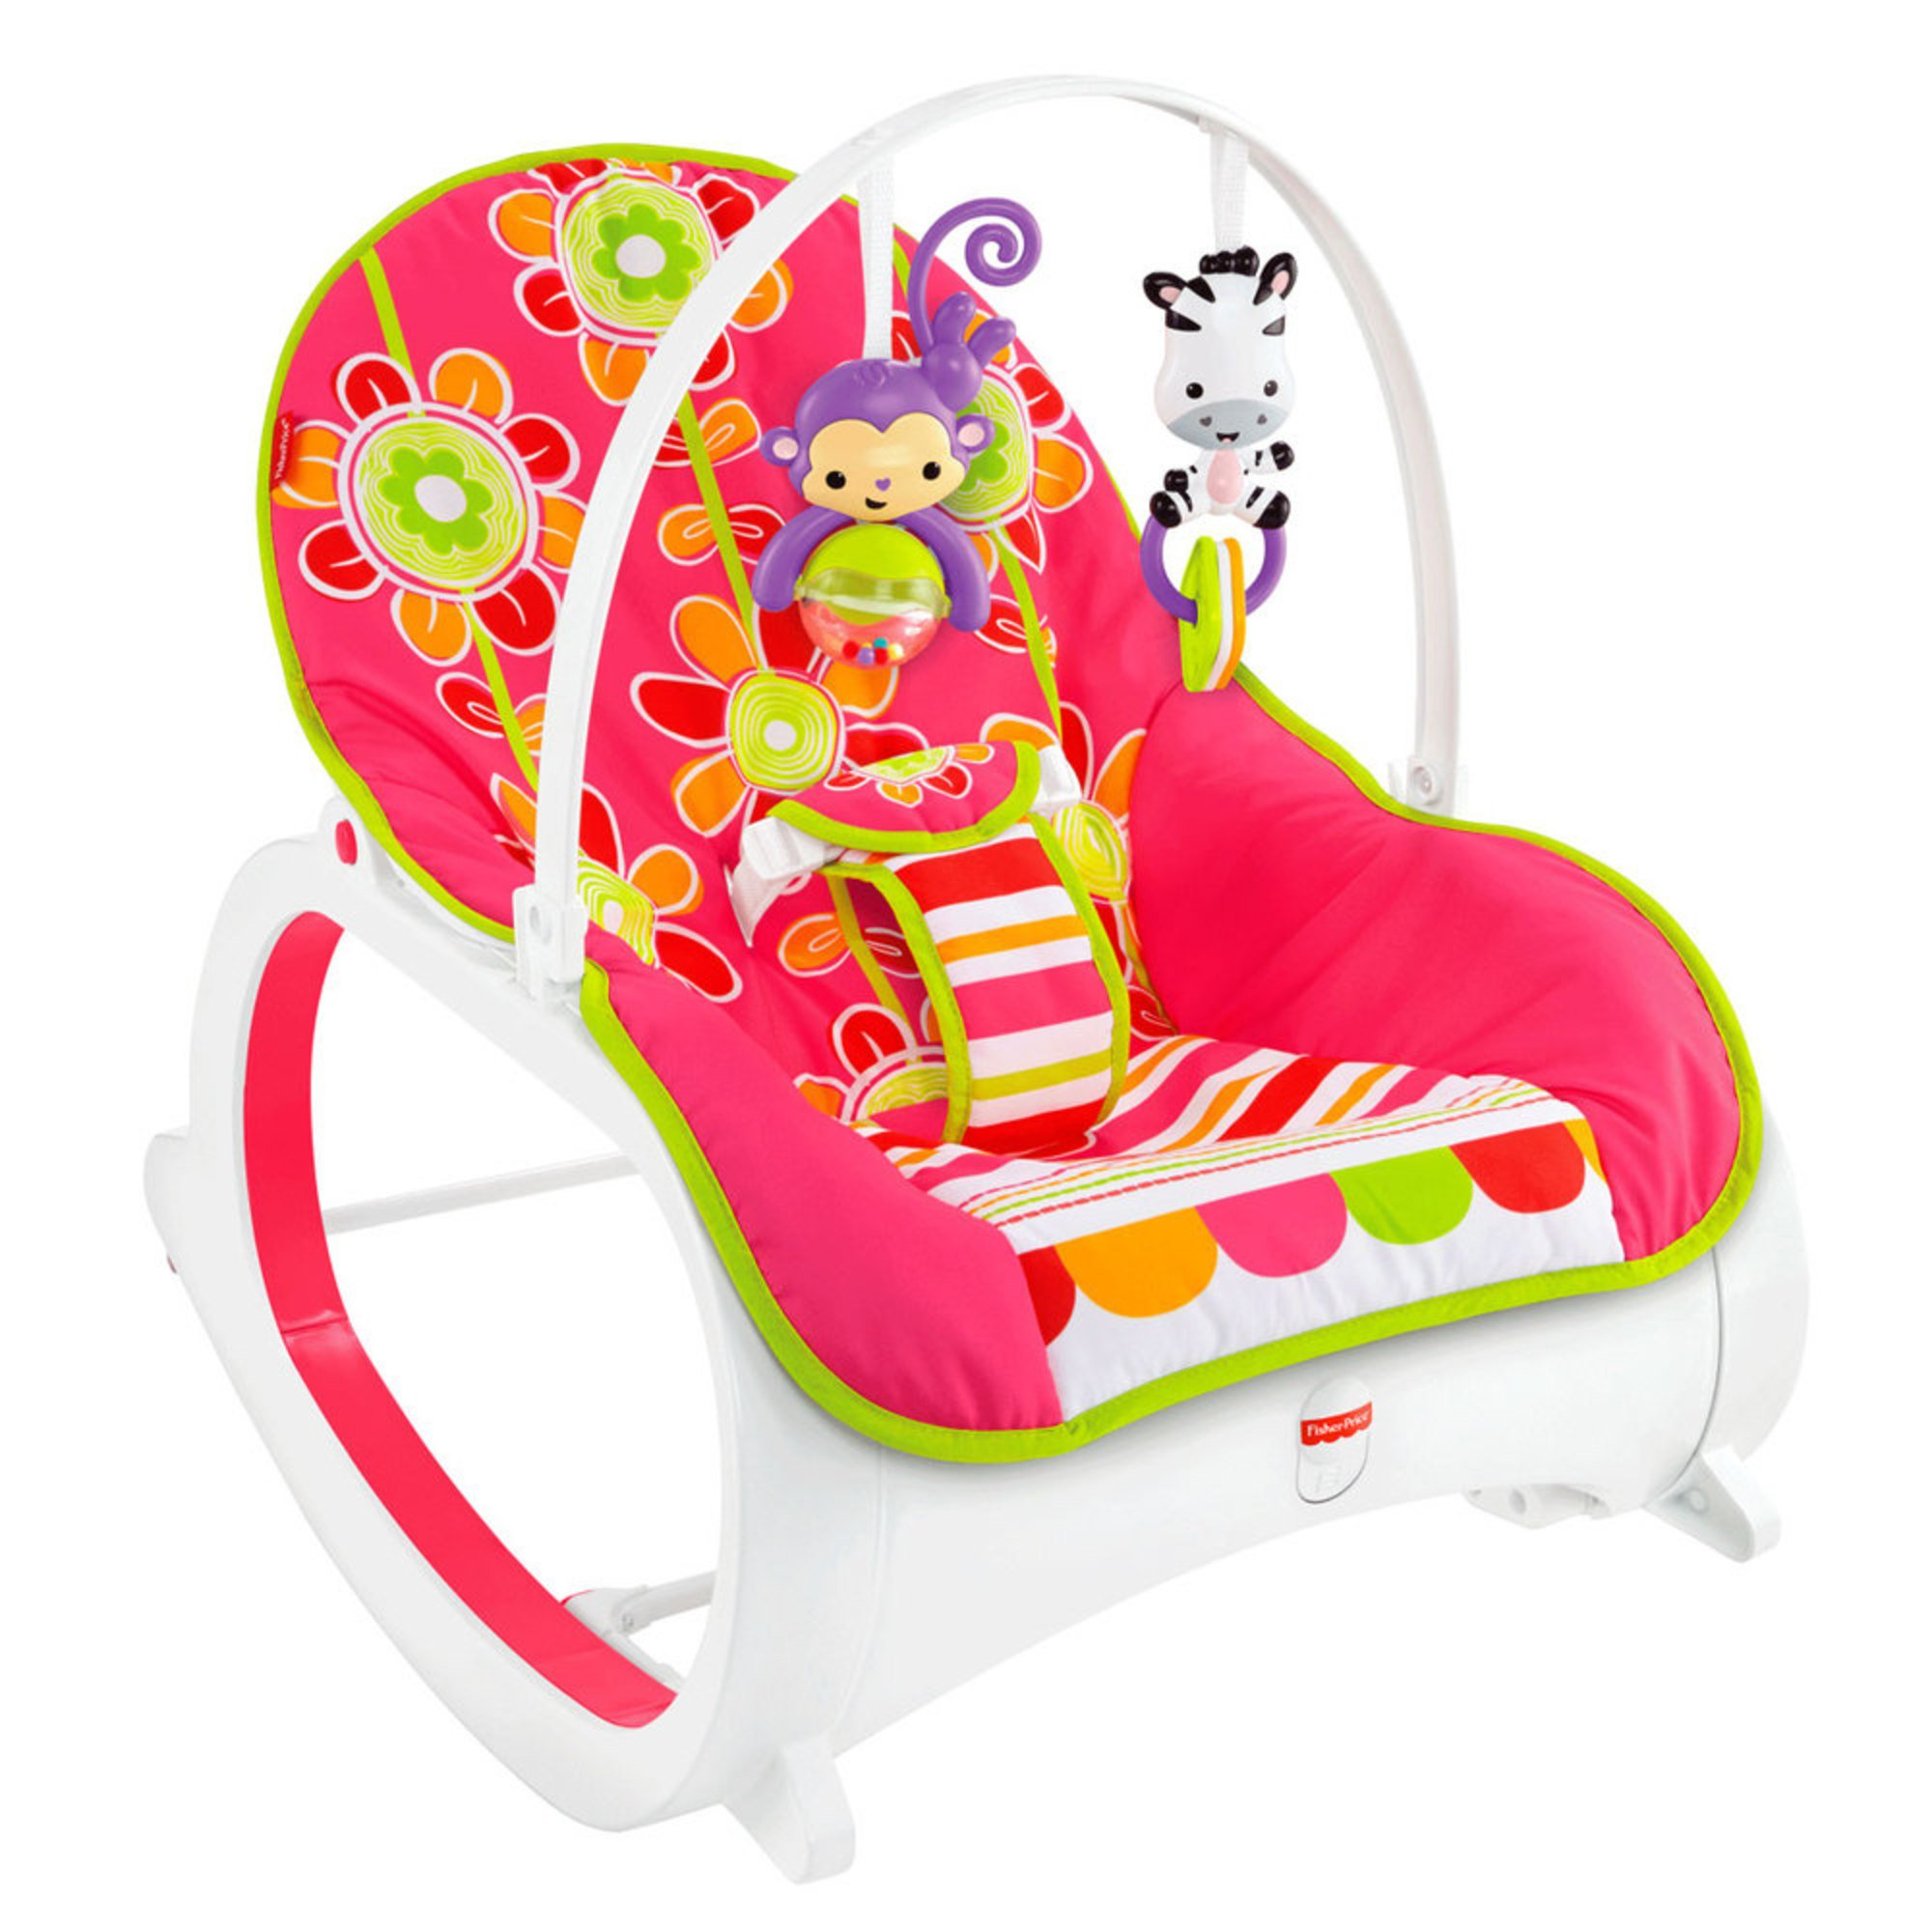 7b39b903d5f8 Fisher-price Infant To Toddler Rocker